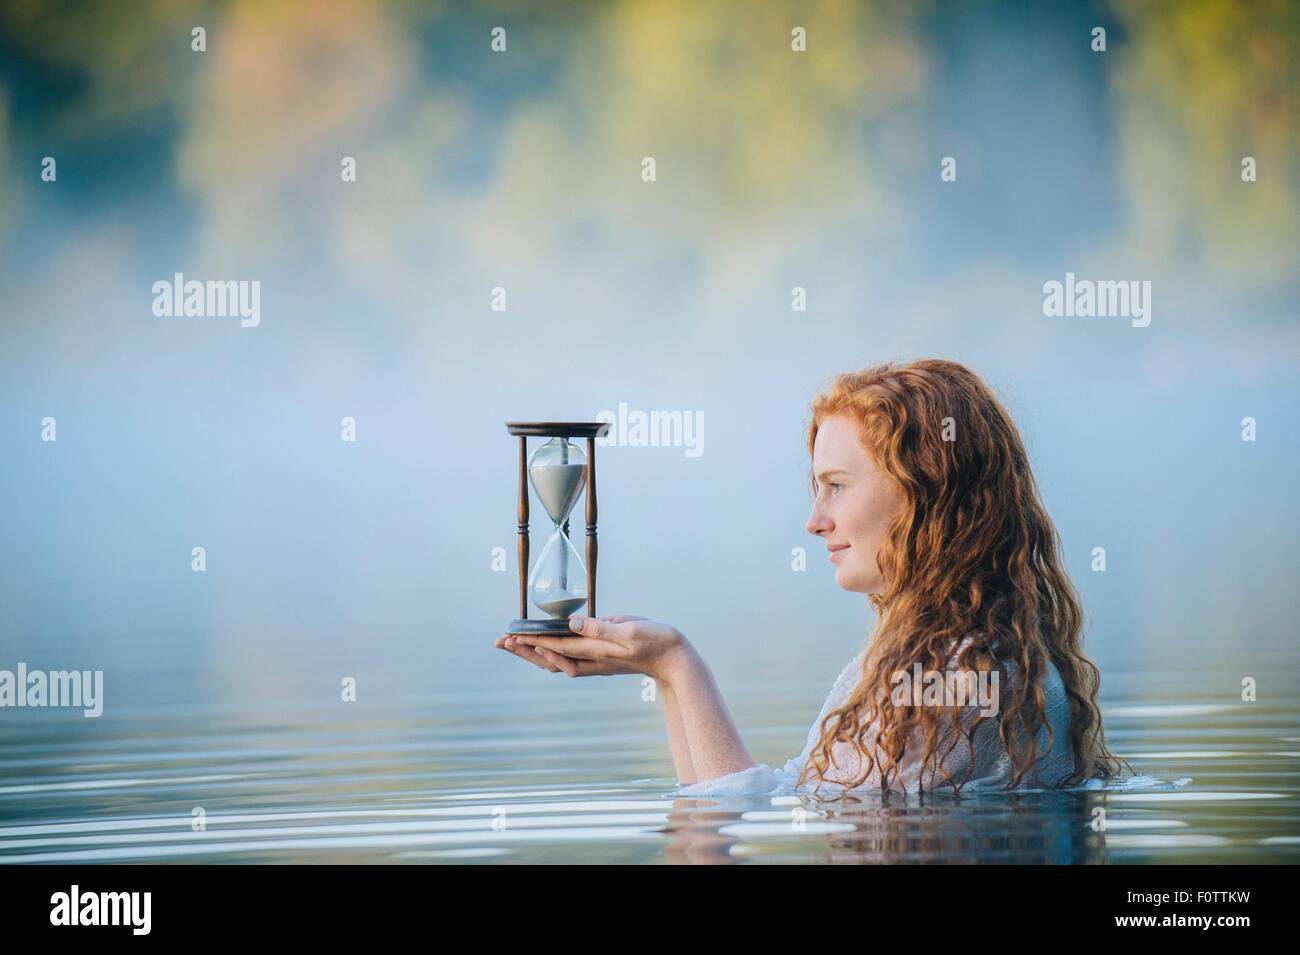 Young woman standing in misty lake gazing at hourglass - Stock Image